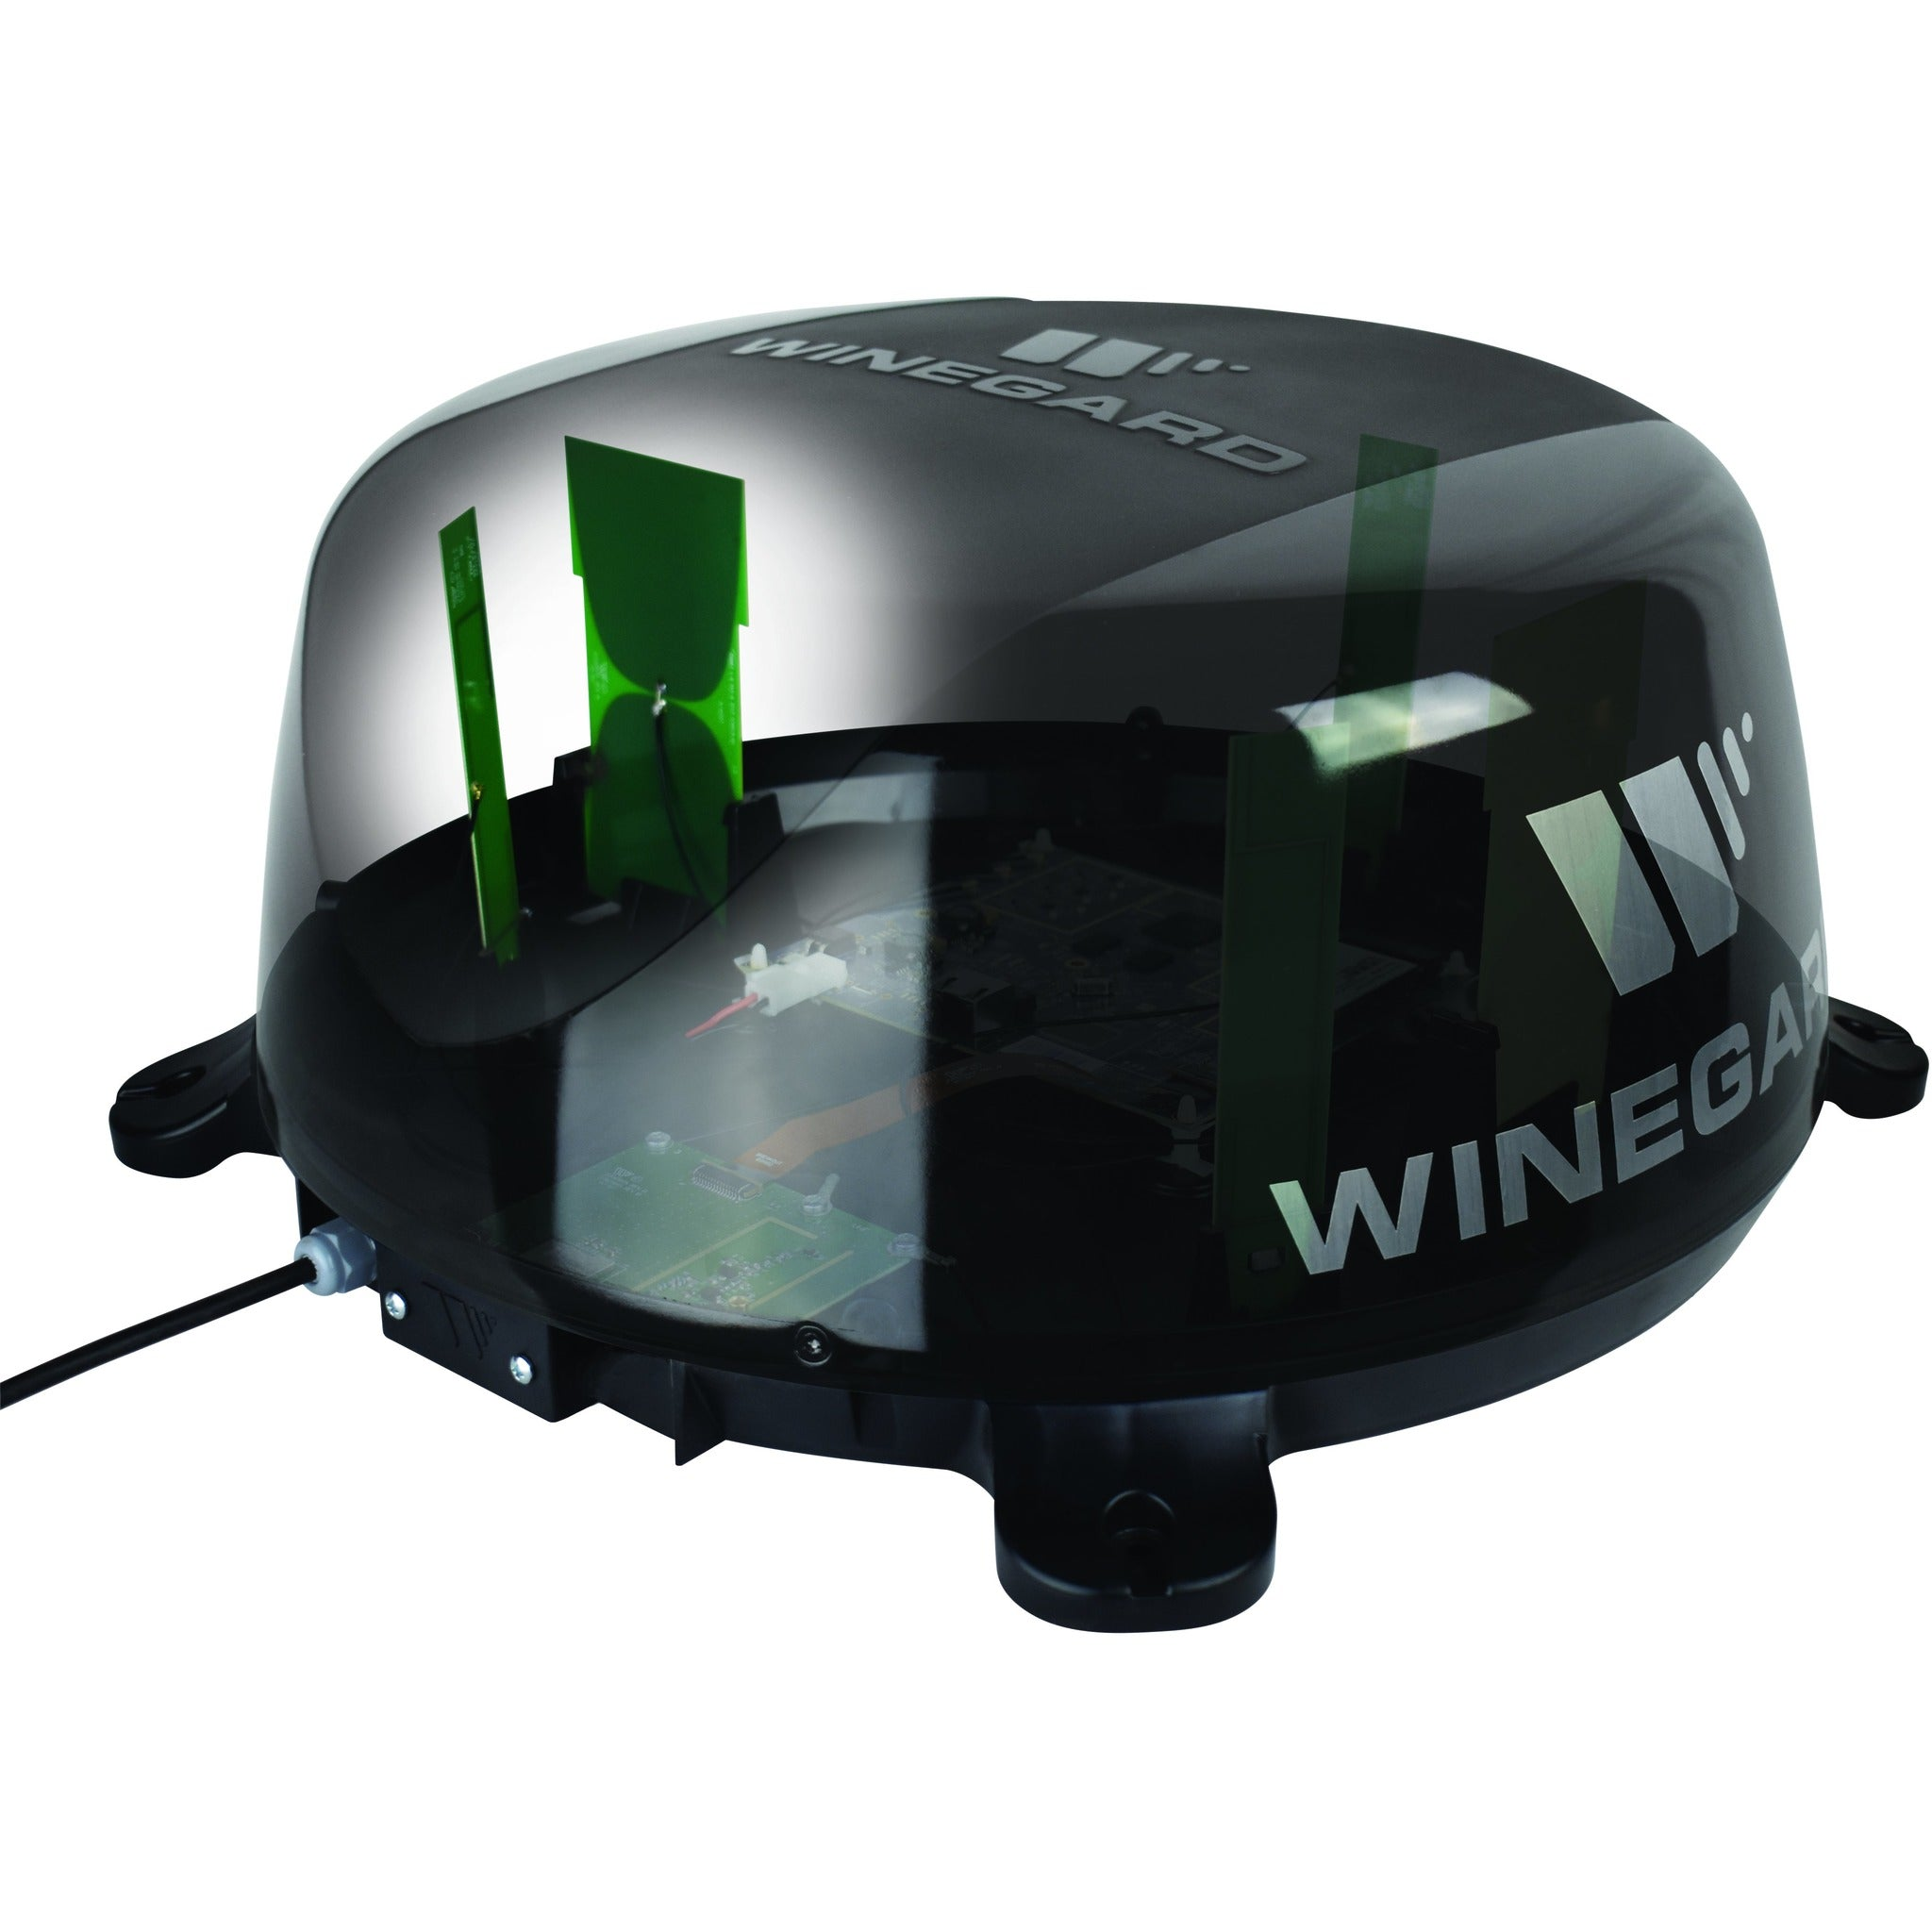 Winegard WF2-435 ConnecT 2.0 4G/WiFi Extender